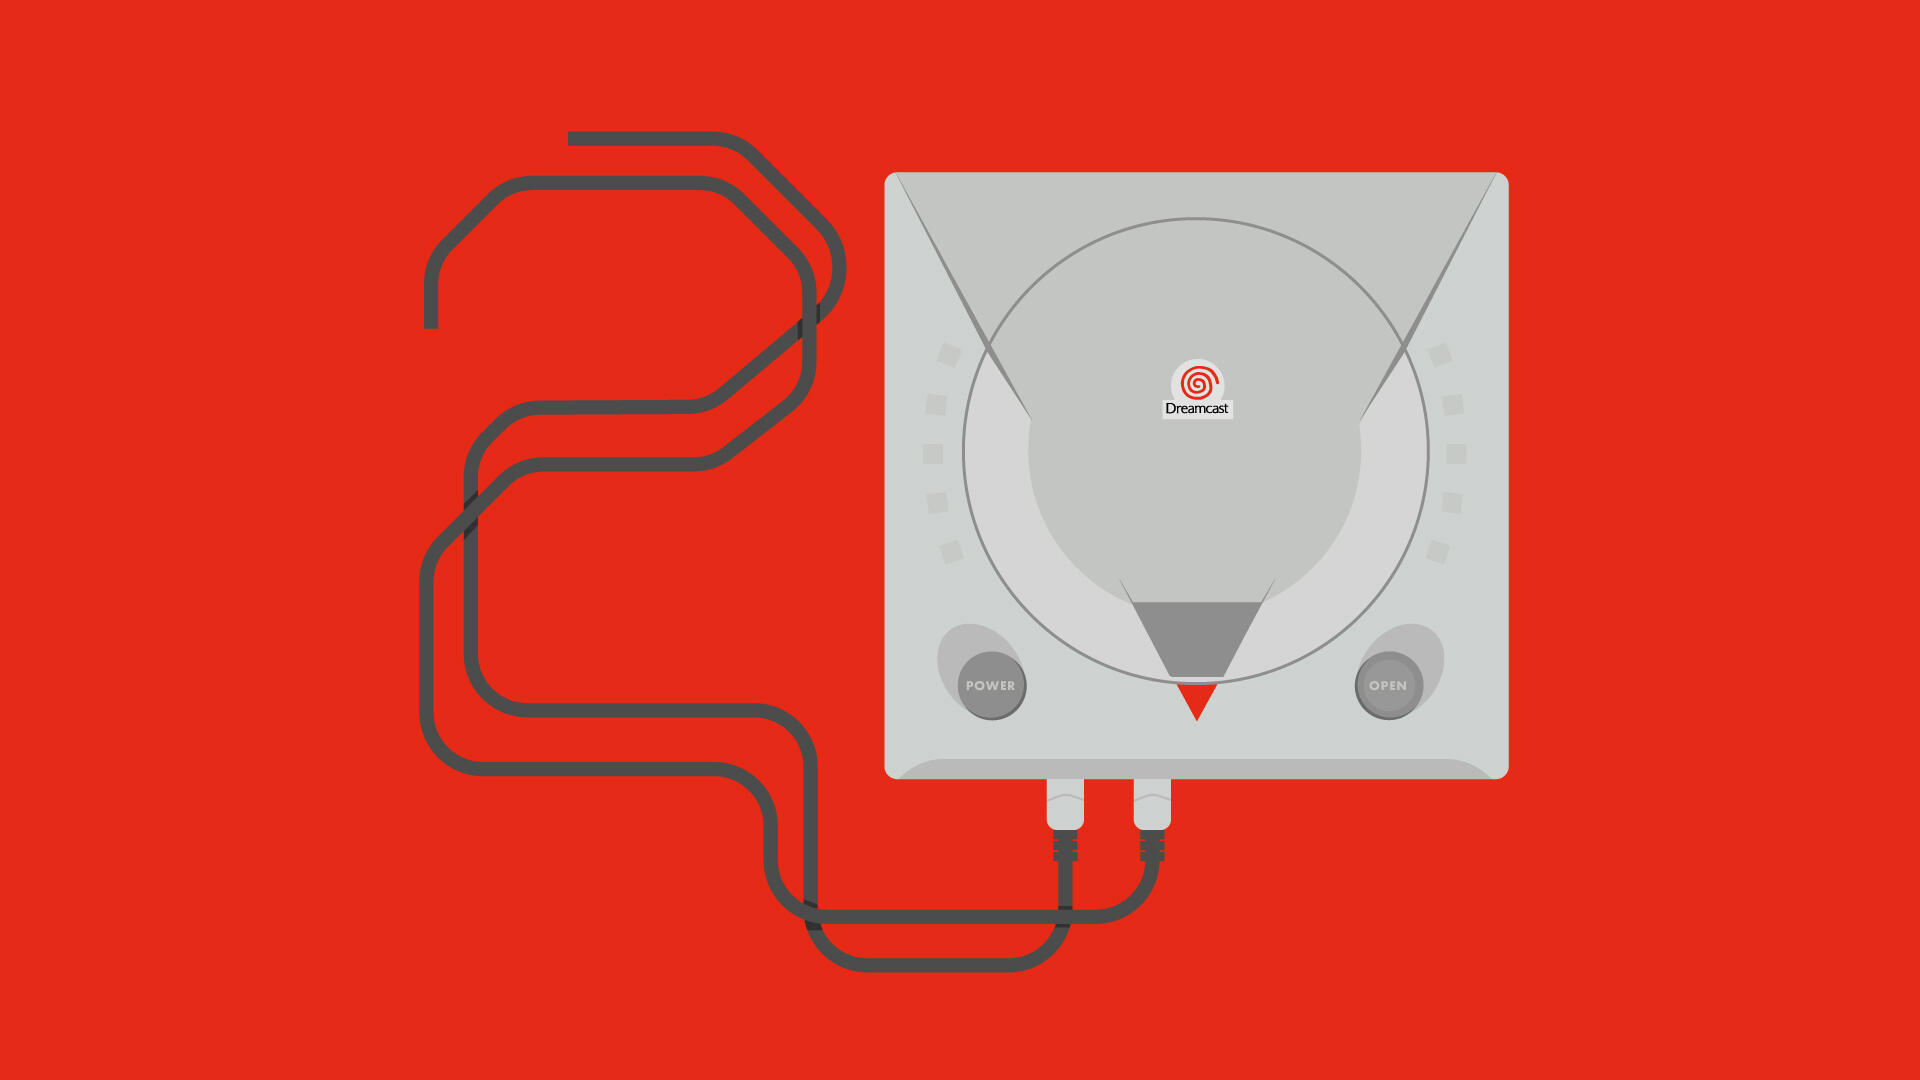 Why the Dreamcast Still Matters